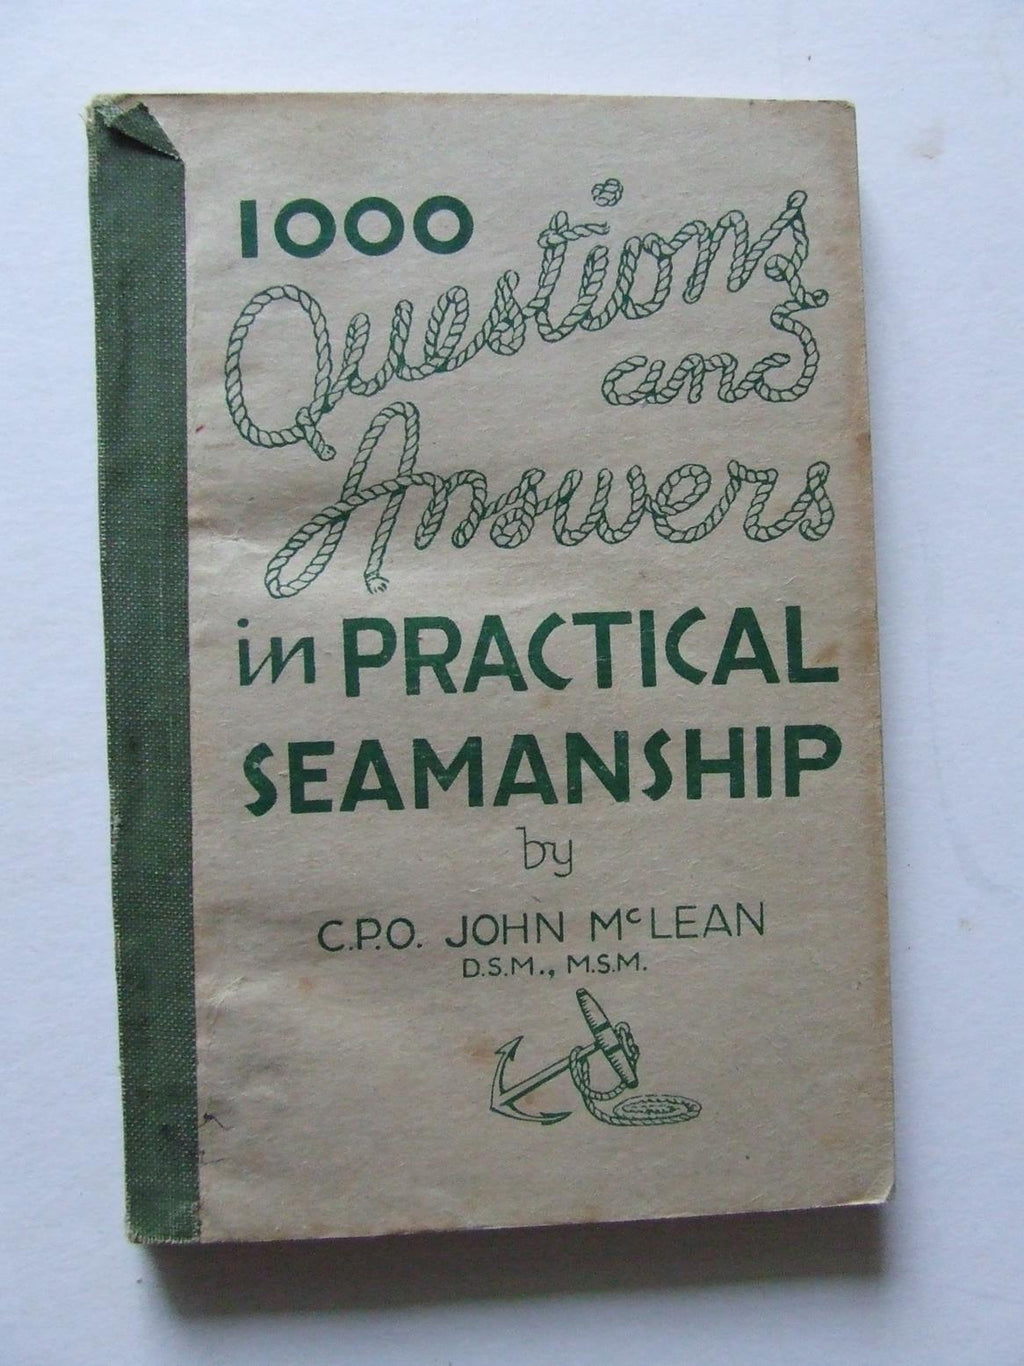 1,000 Questions, Answers, and Diagrams in Practical Seamanship